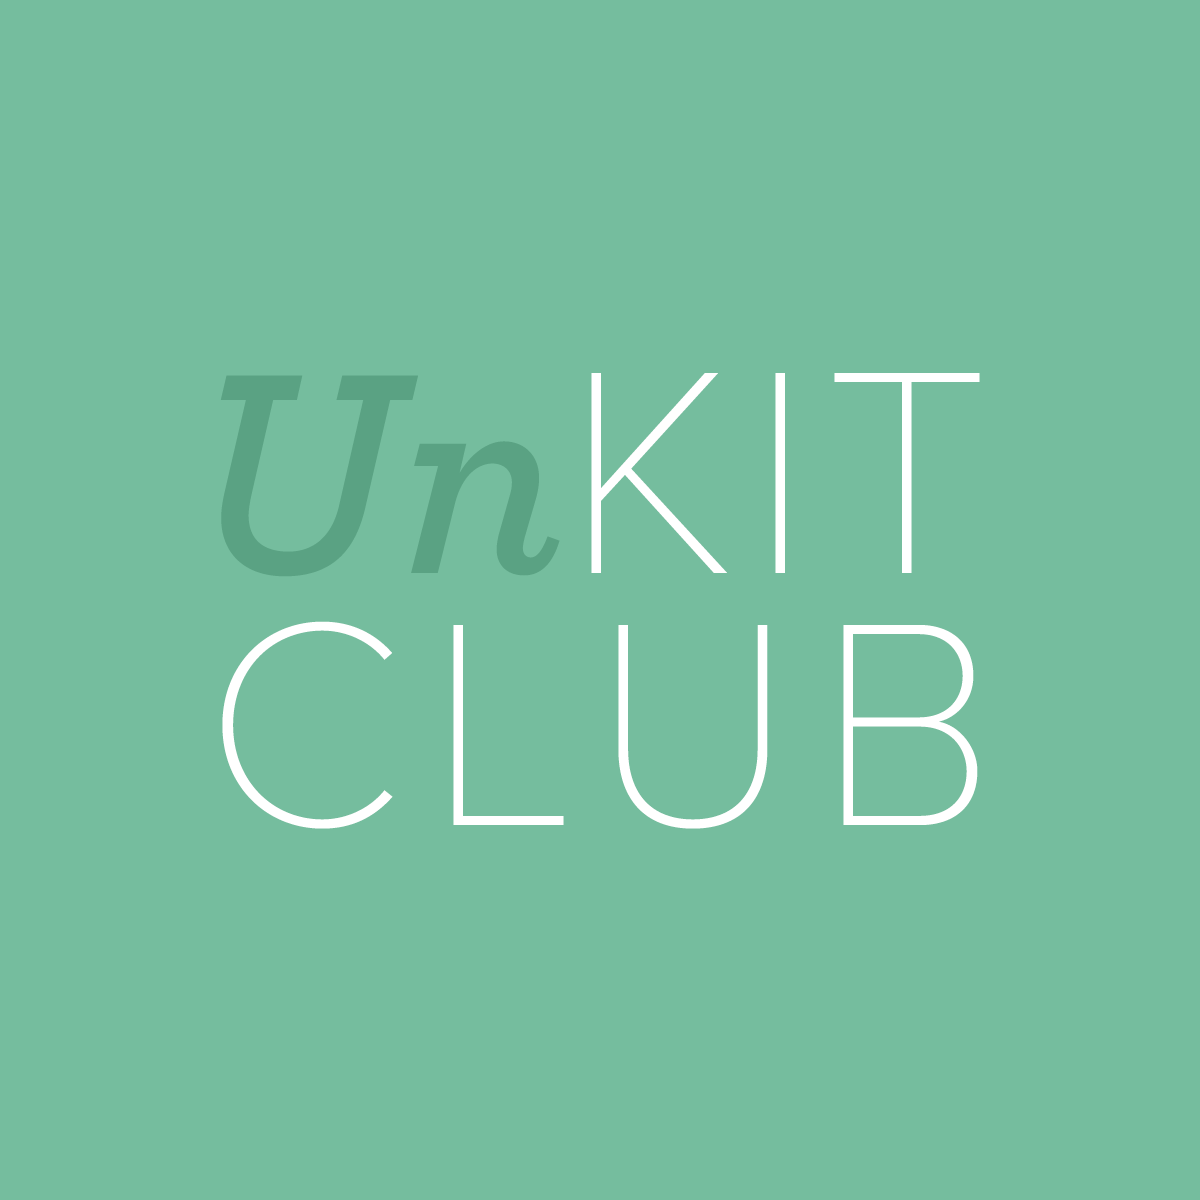 The unKit Club at Simple Scrapper